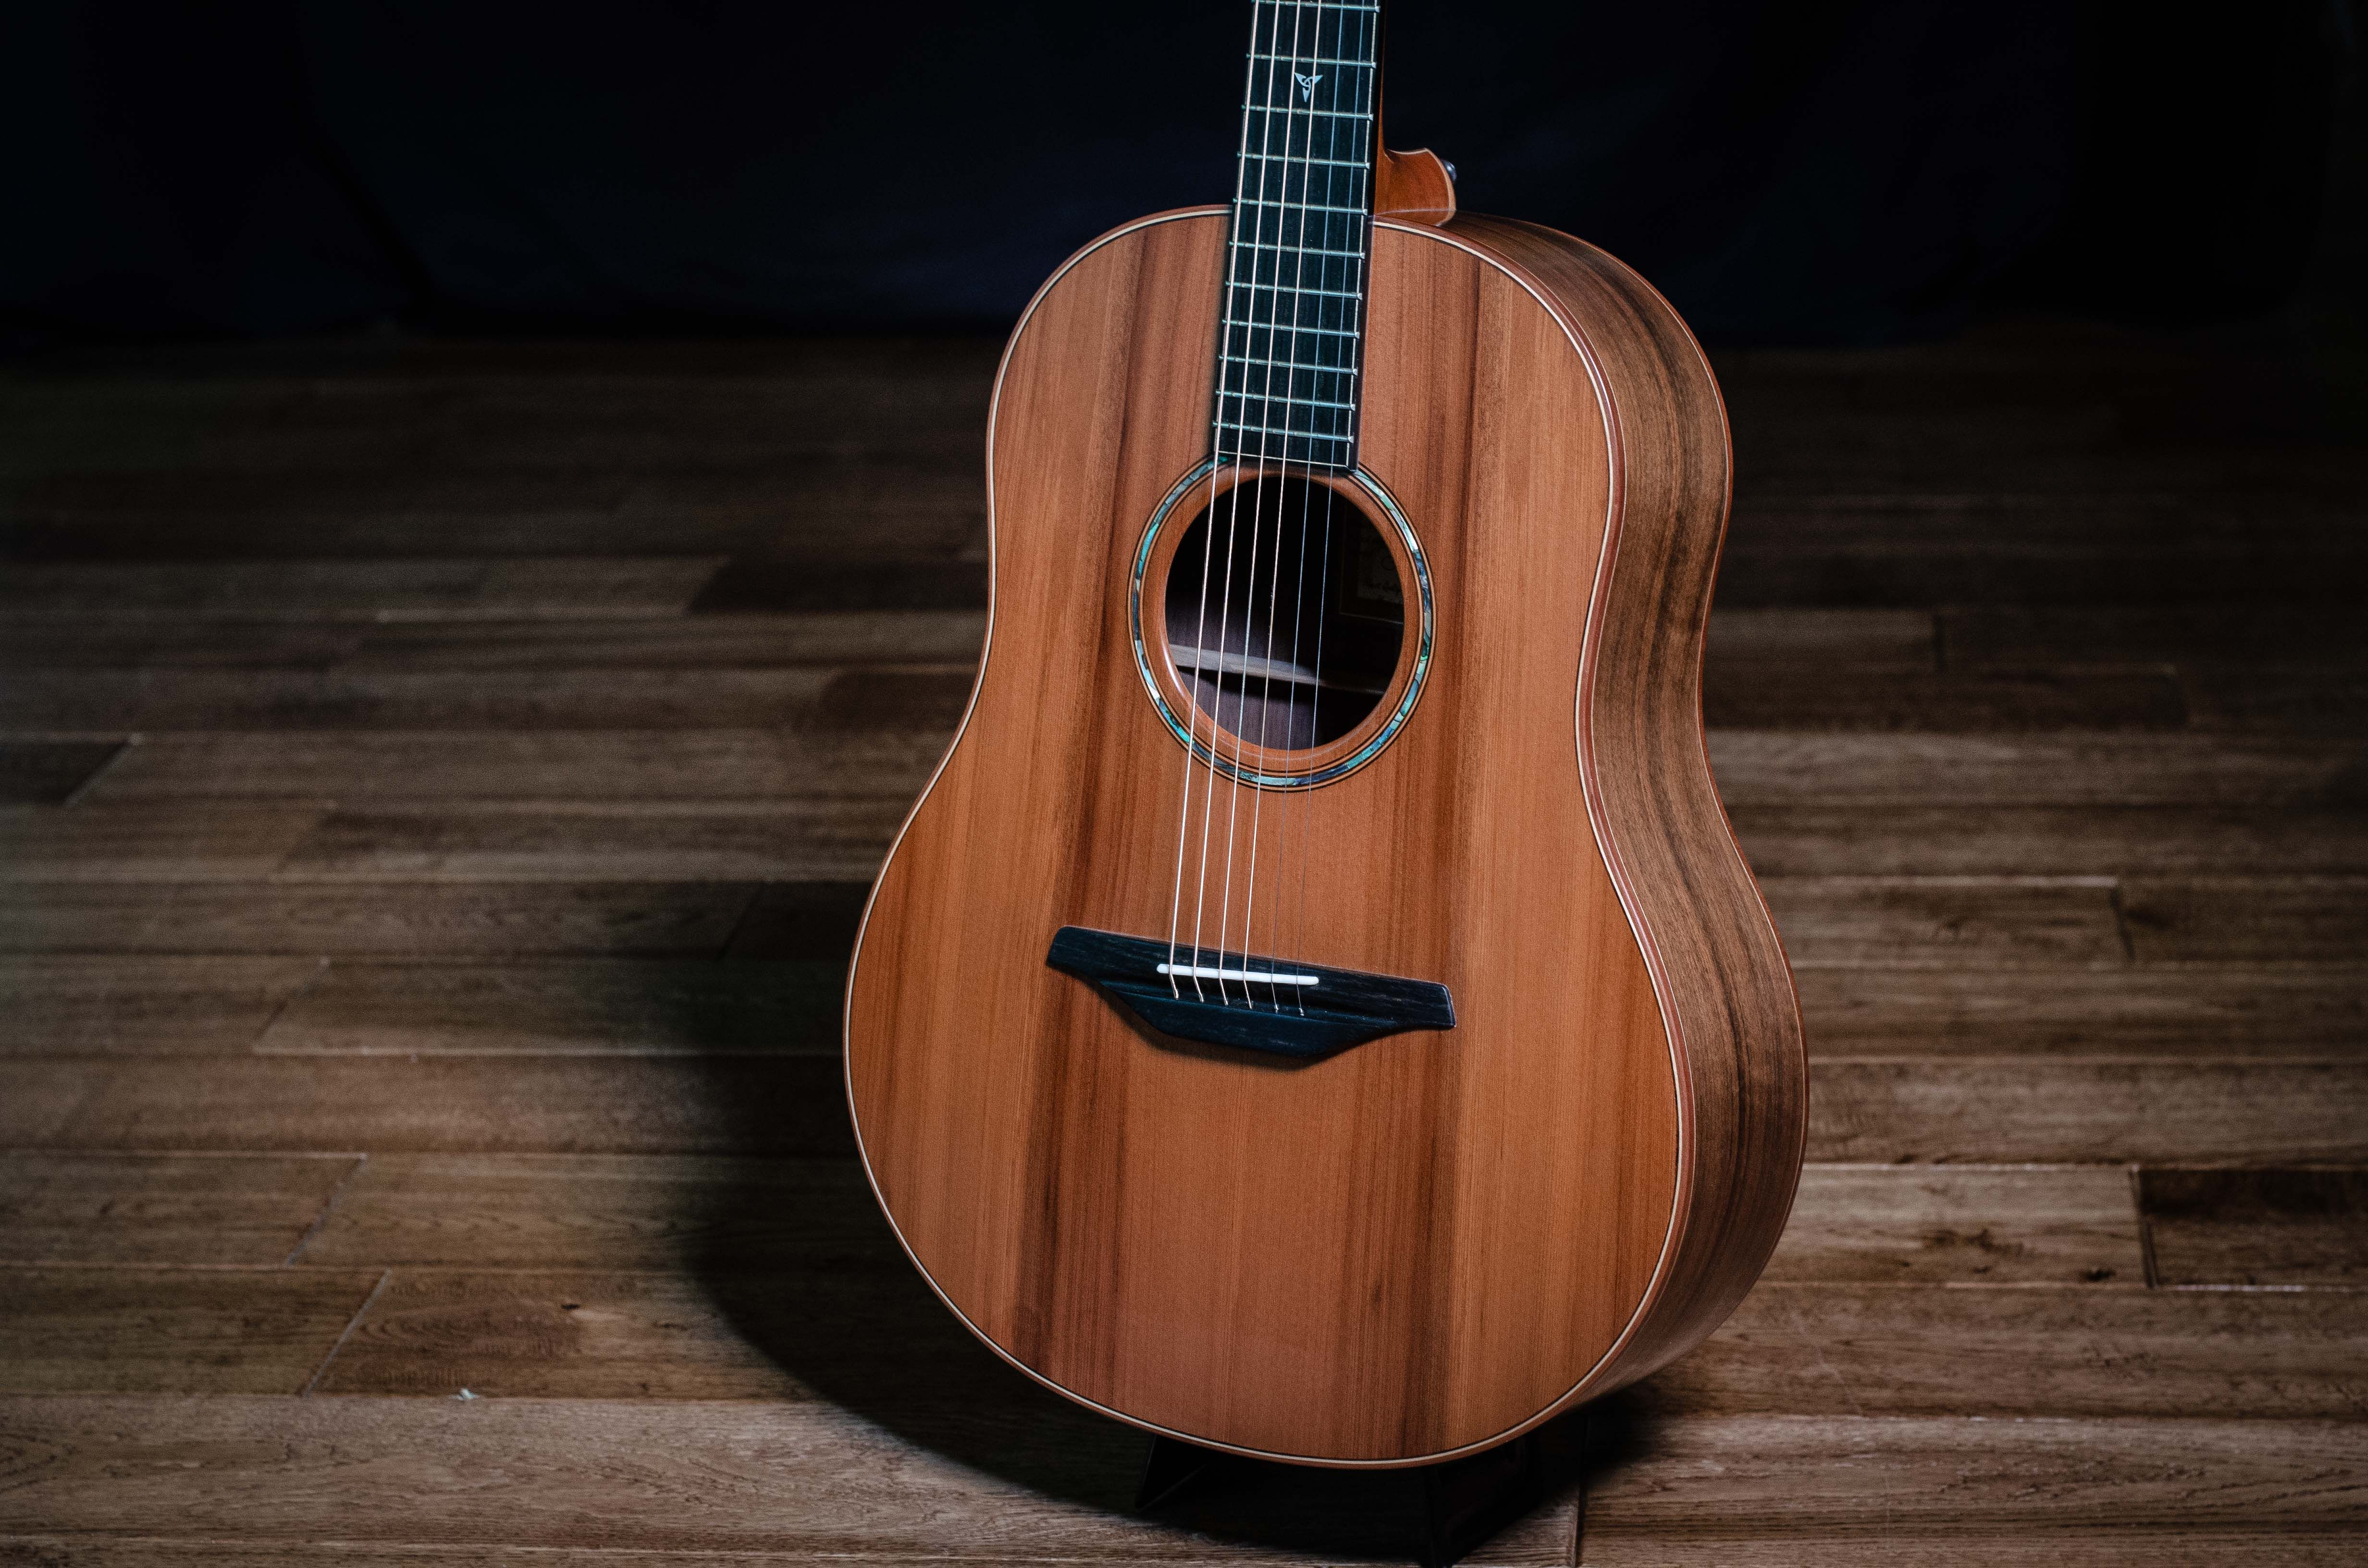 This Mcillroy Asd28 Is A Fantastic Compact Dreadnought In 7 8 Size But With Normal Scale Length It Features English Walnut Seagull Guitars Guitar Redwood